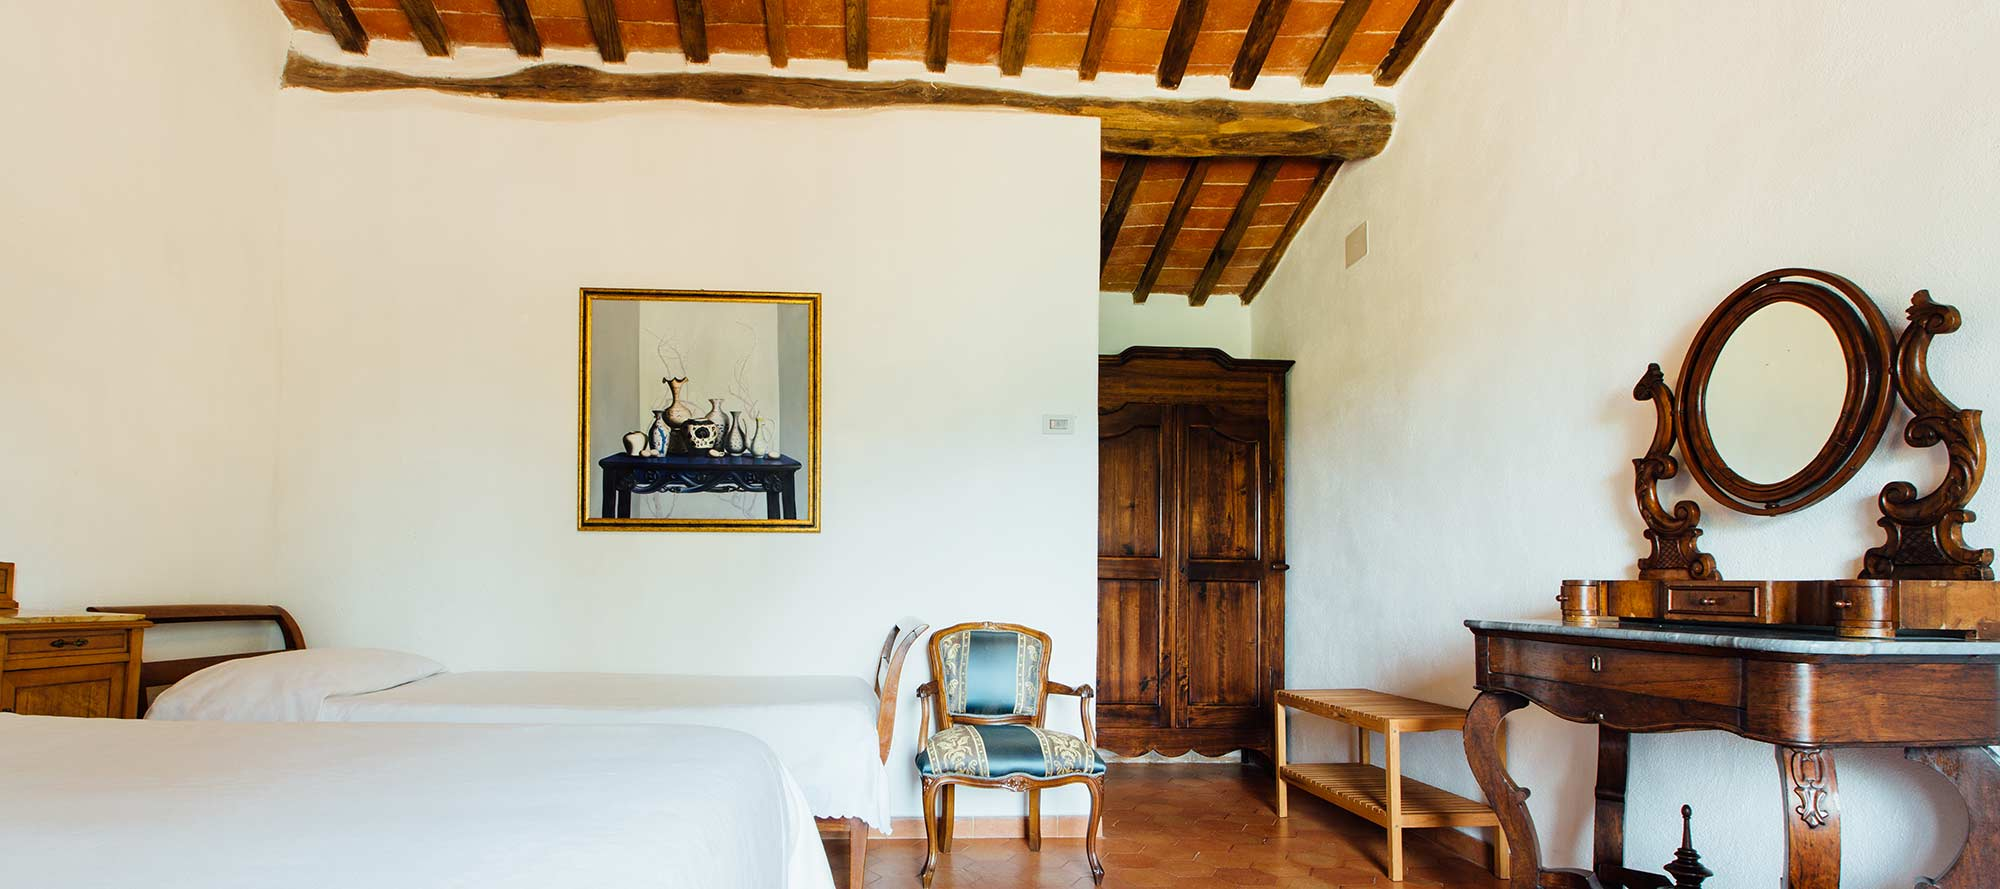 Details Santa Fiore - All Properties in Tuscany